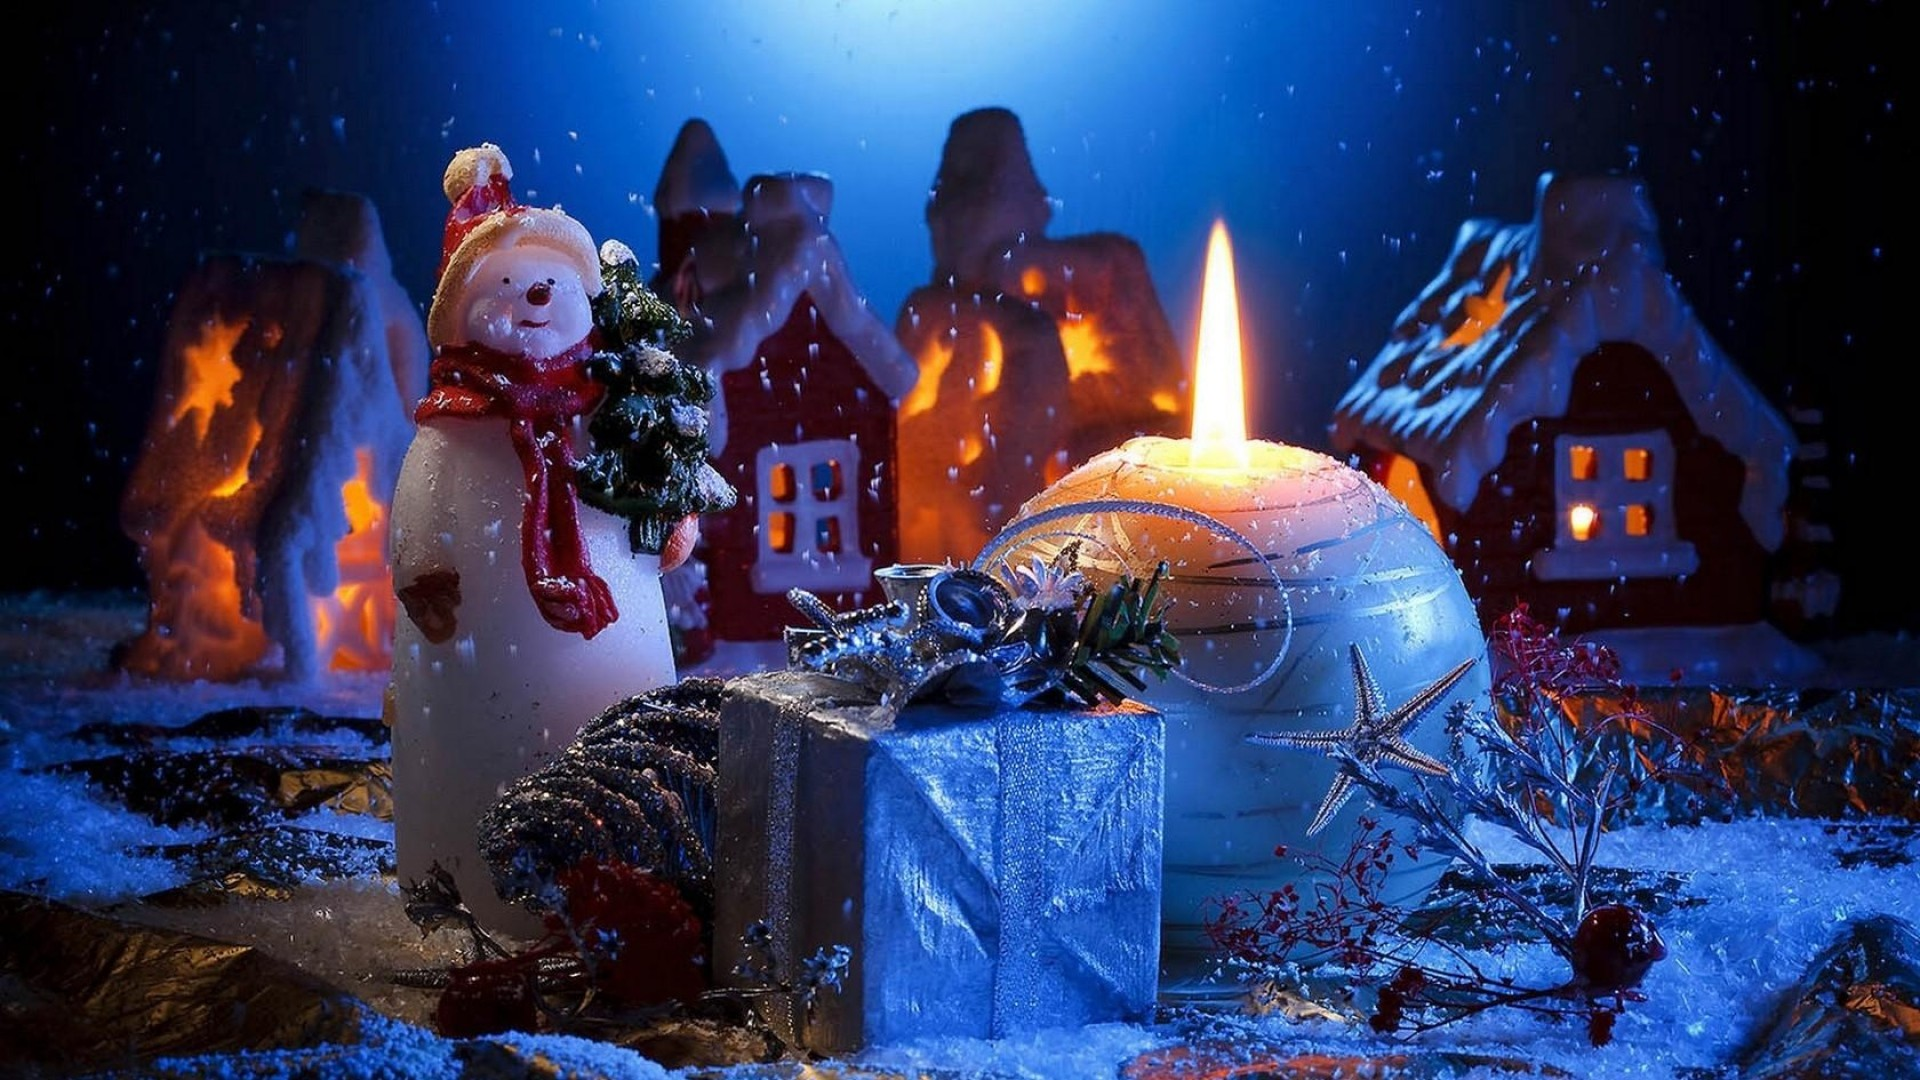 1920x1080 Gift, Home, Holiday, New year, Christmas Full HD 1080p .